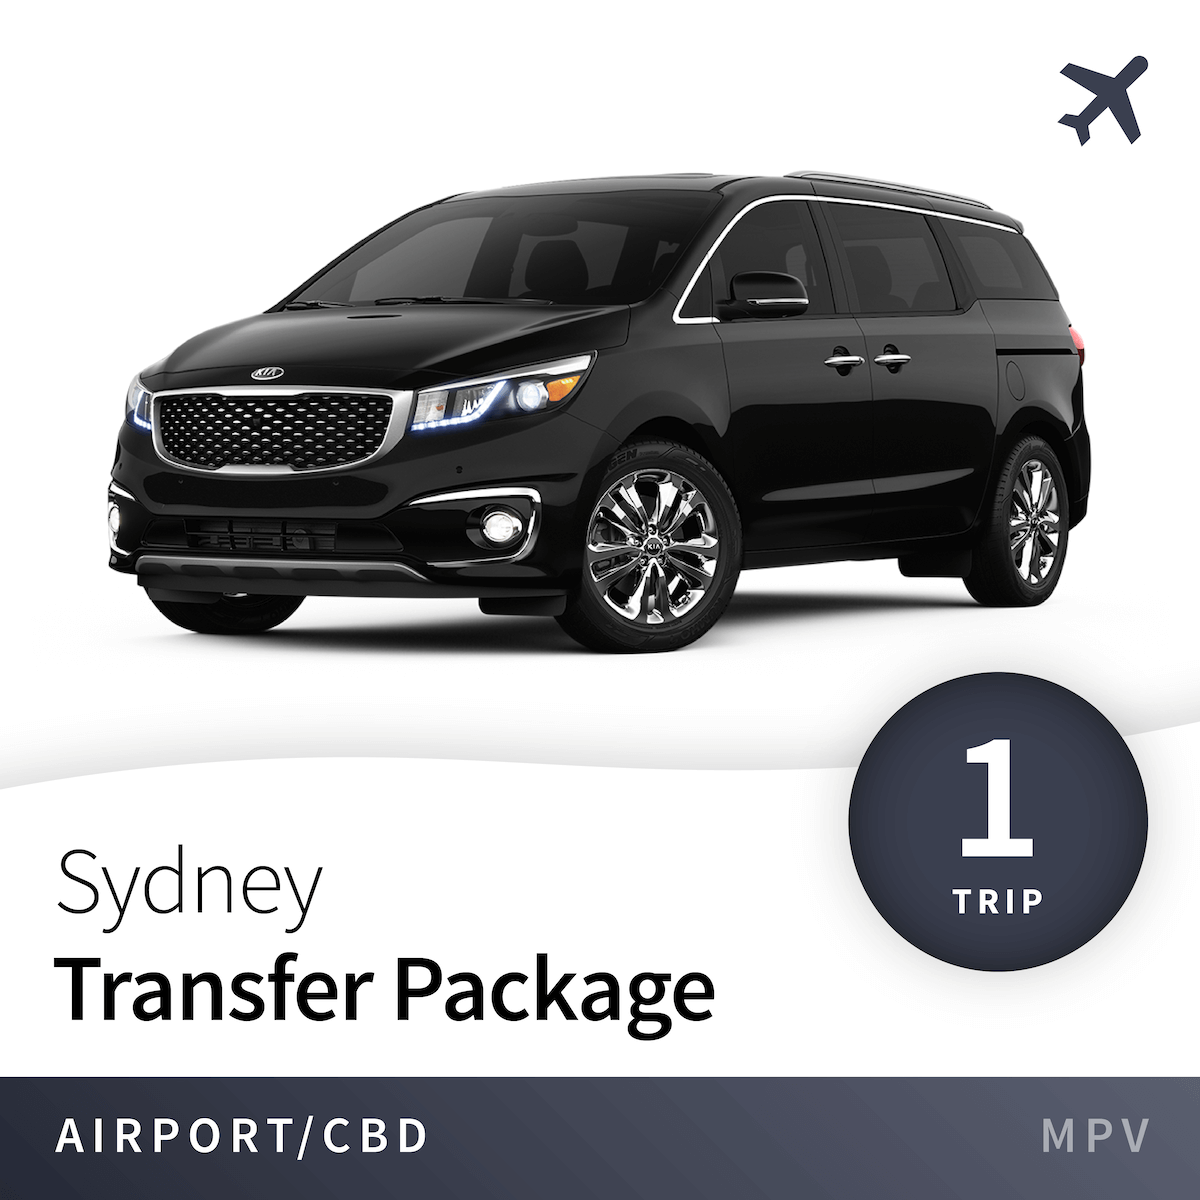 Sydney Airport Transfer Package - MPV (1 Trip) 9